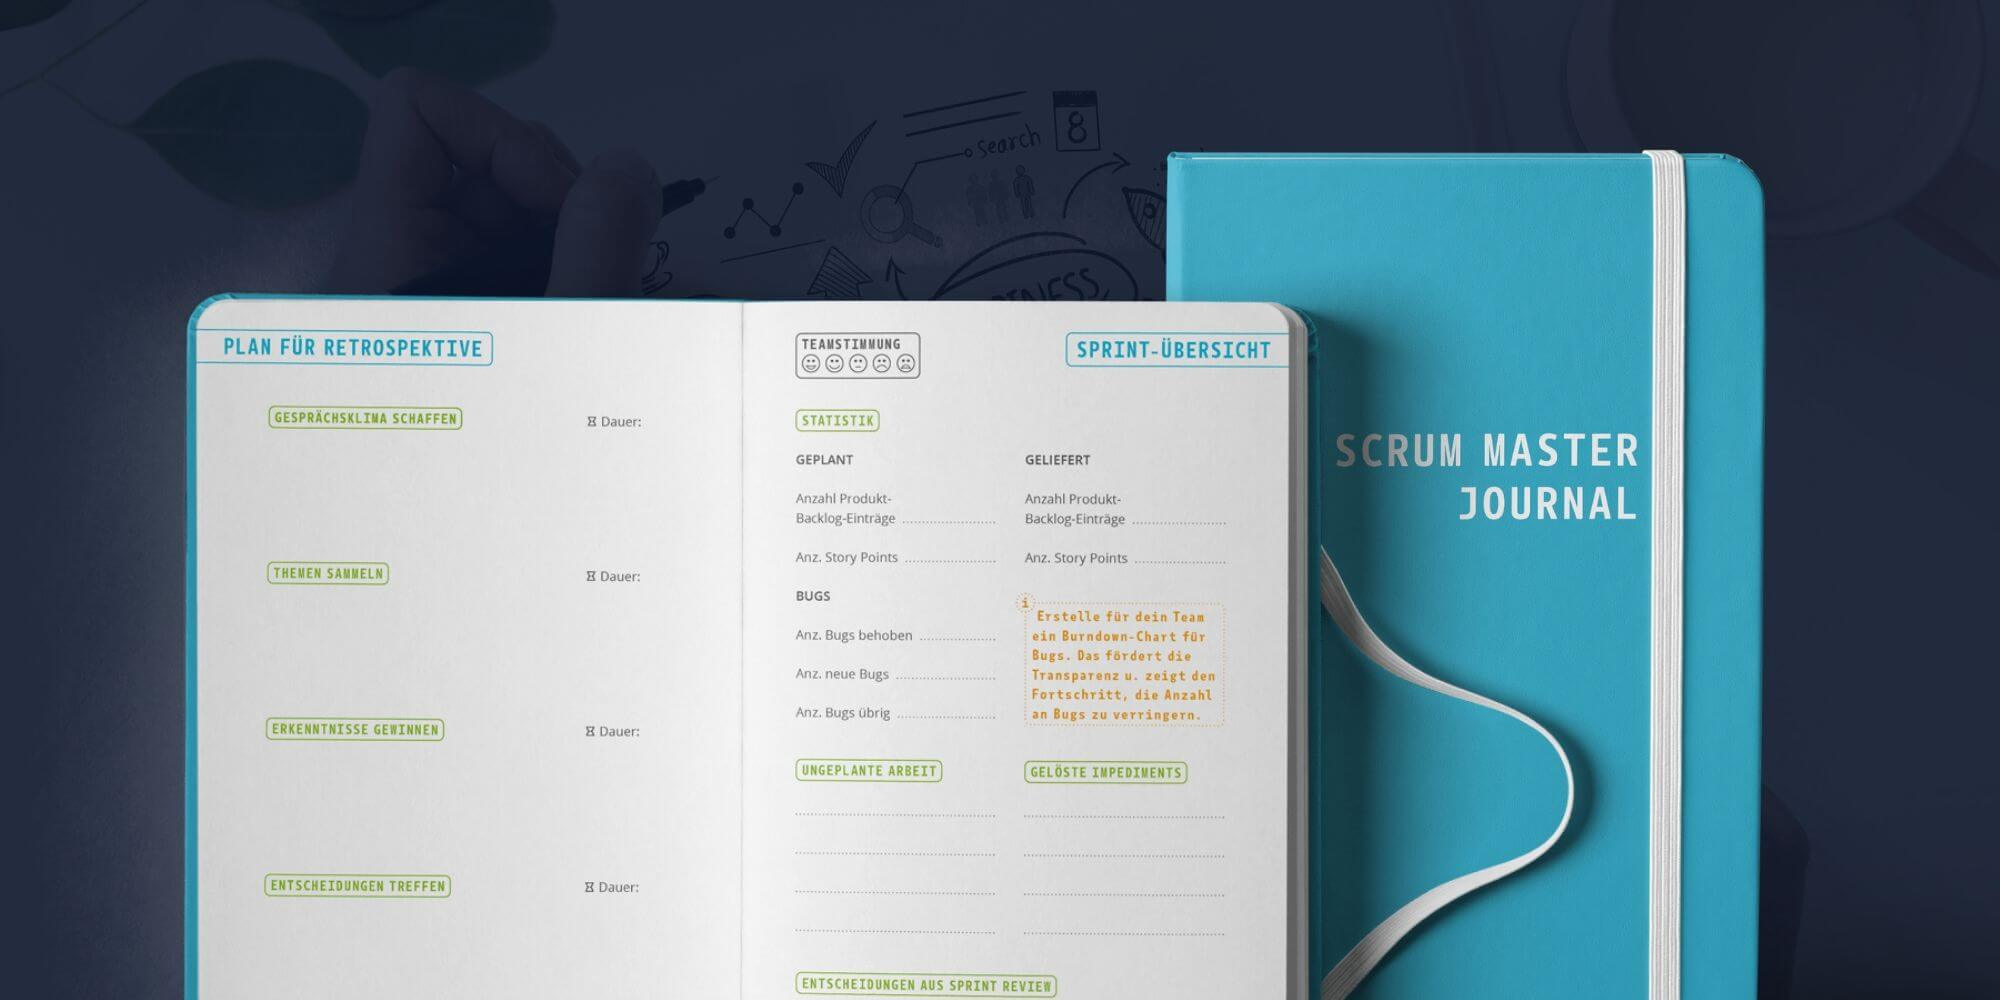 scrum-master-journal-header